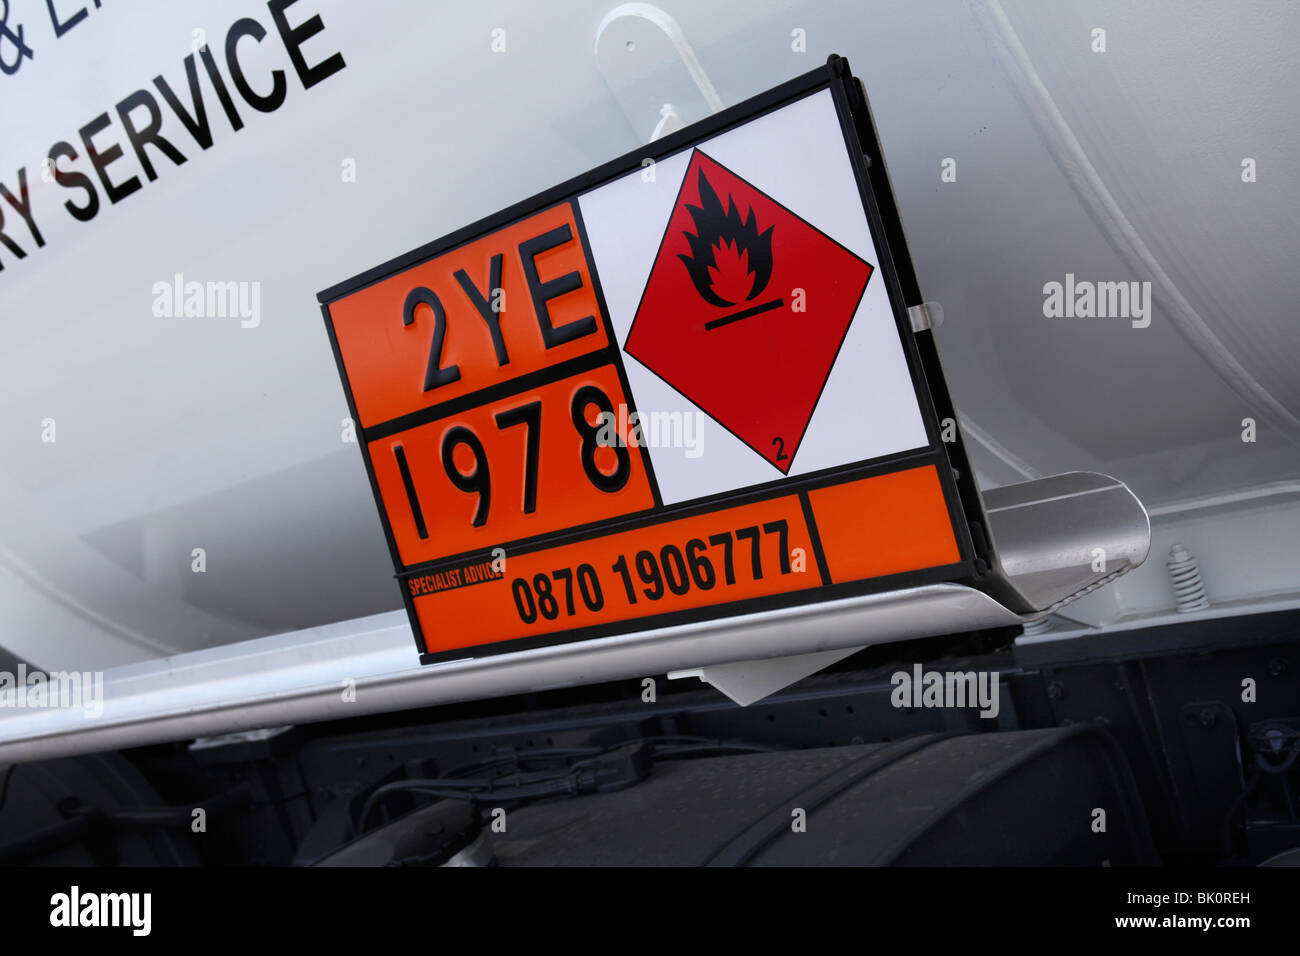 Safety sign on a road tanker - Stock Image